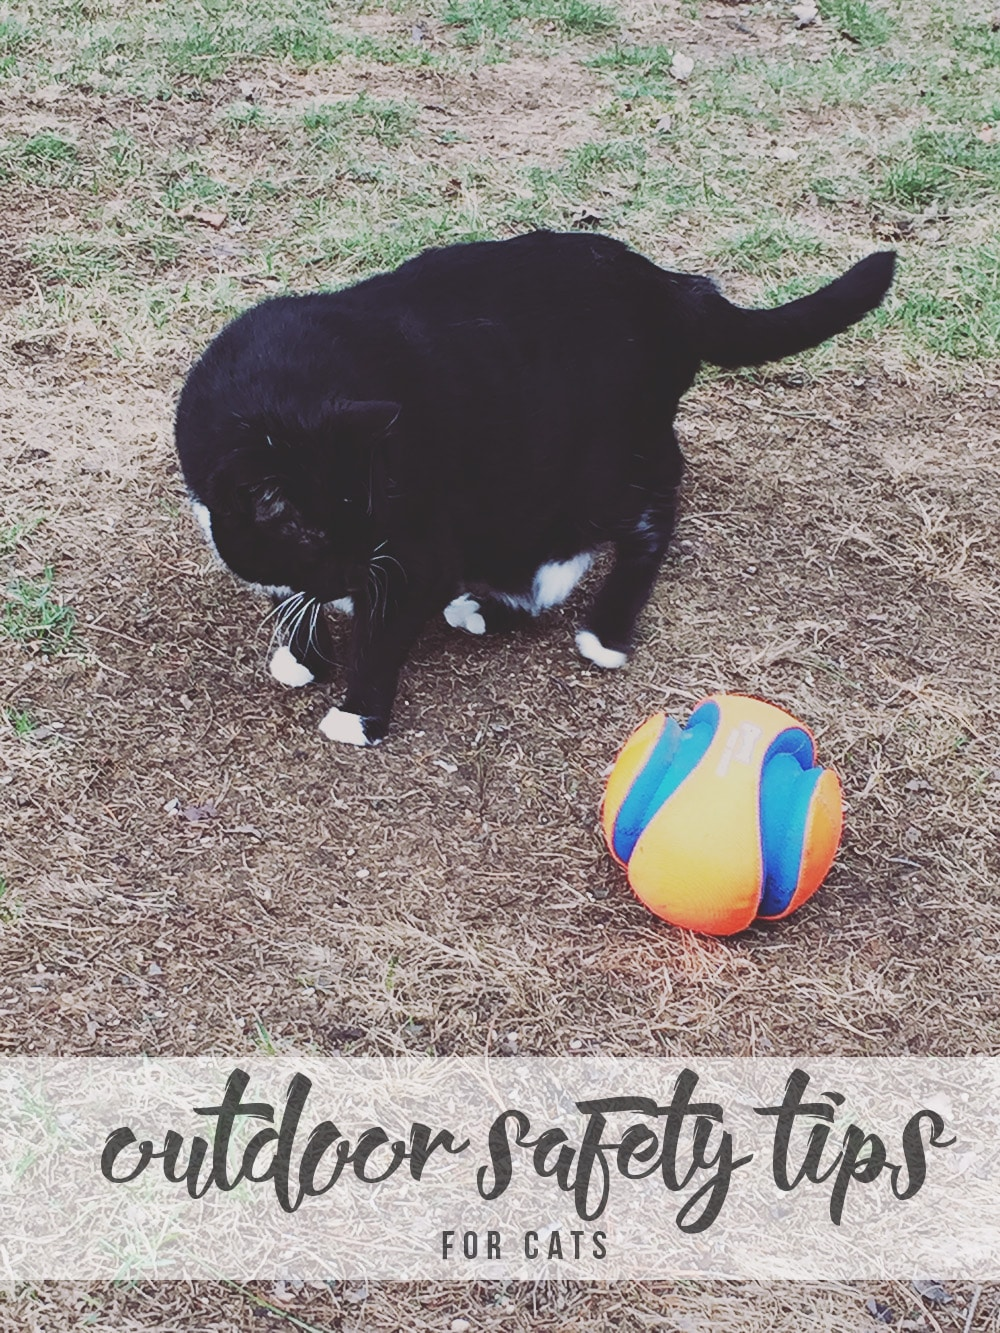 Share your love for nature with your cat. These outdoor safety tips for cats will ensure that you both have fun while staying safe!